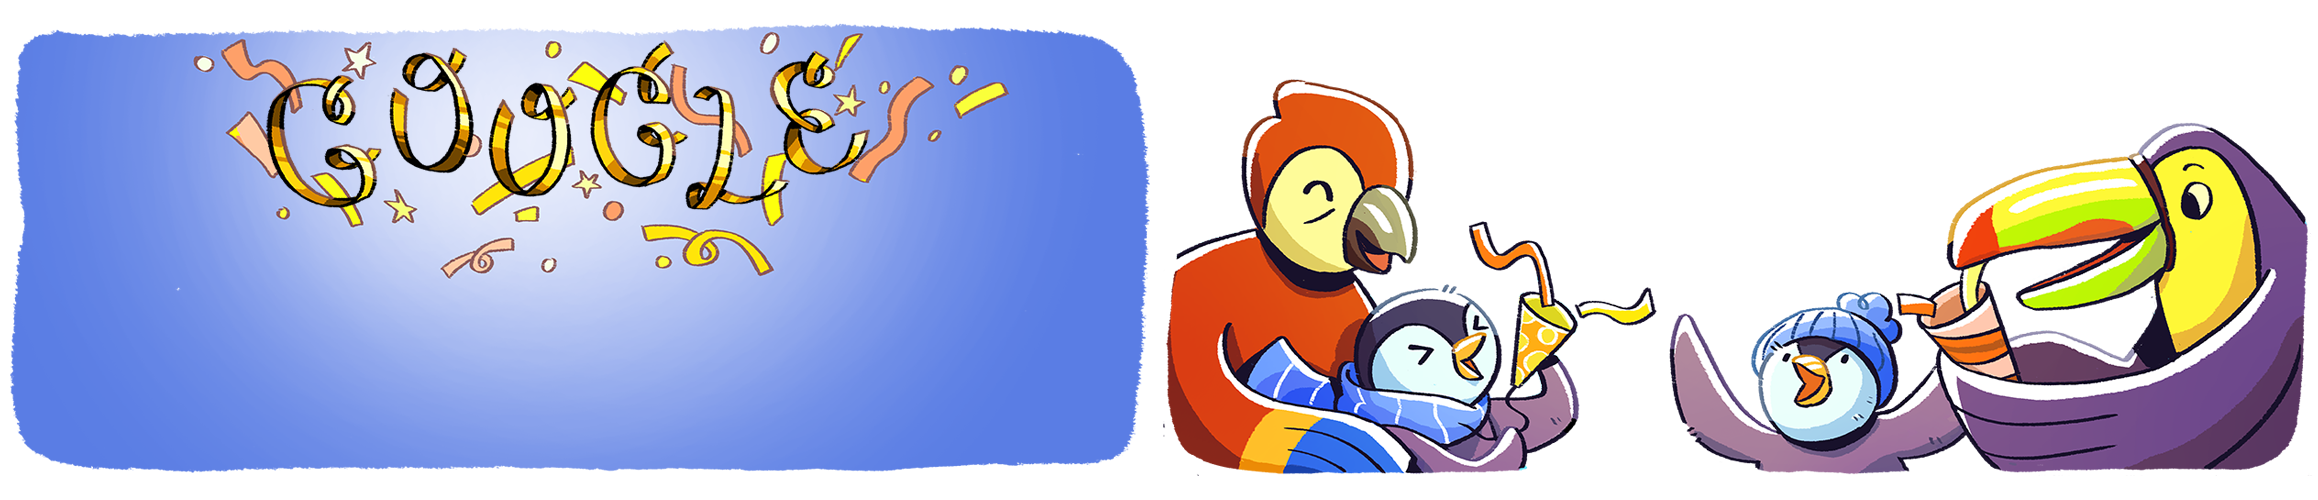 Teamwork clipart doodle. New years eve ssw